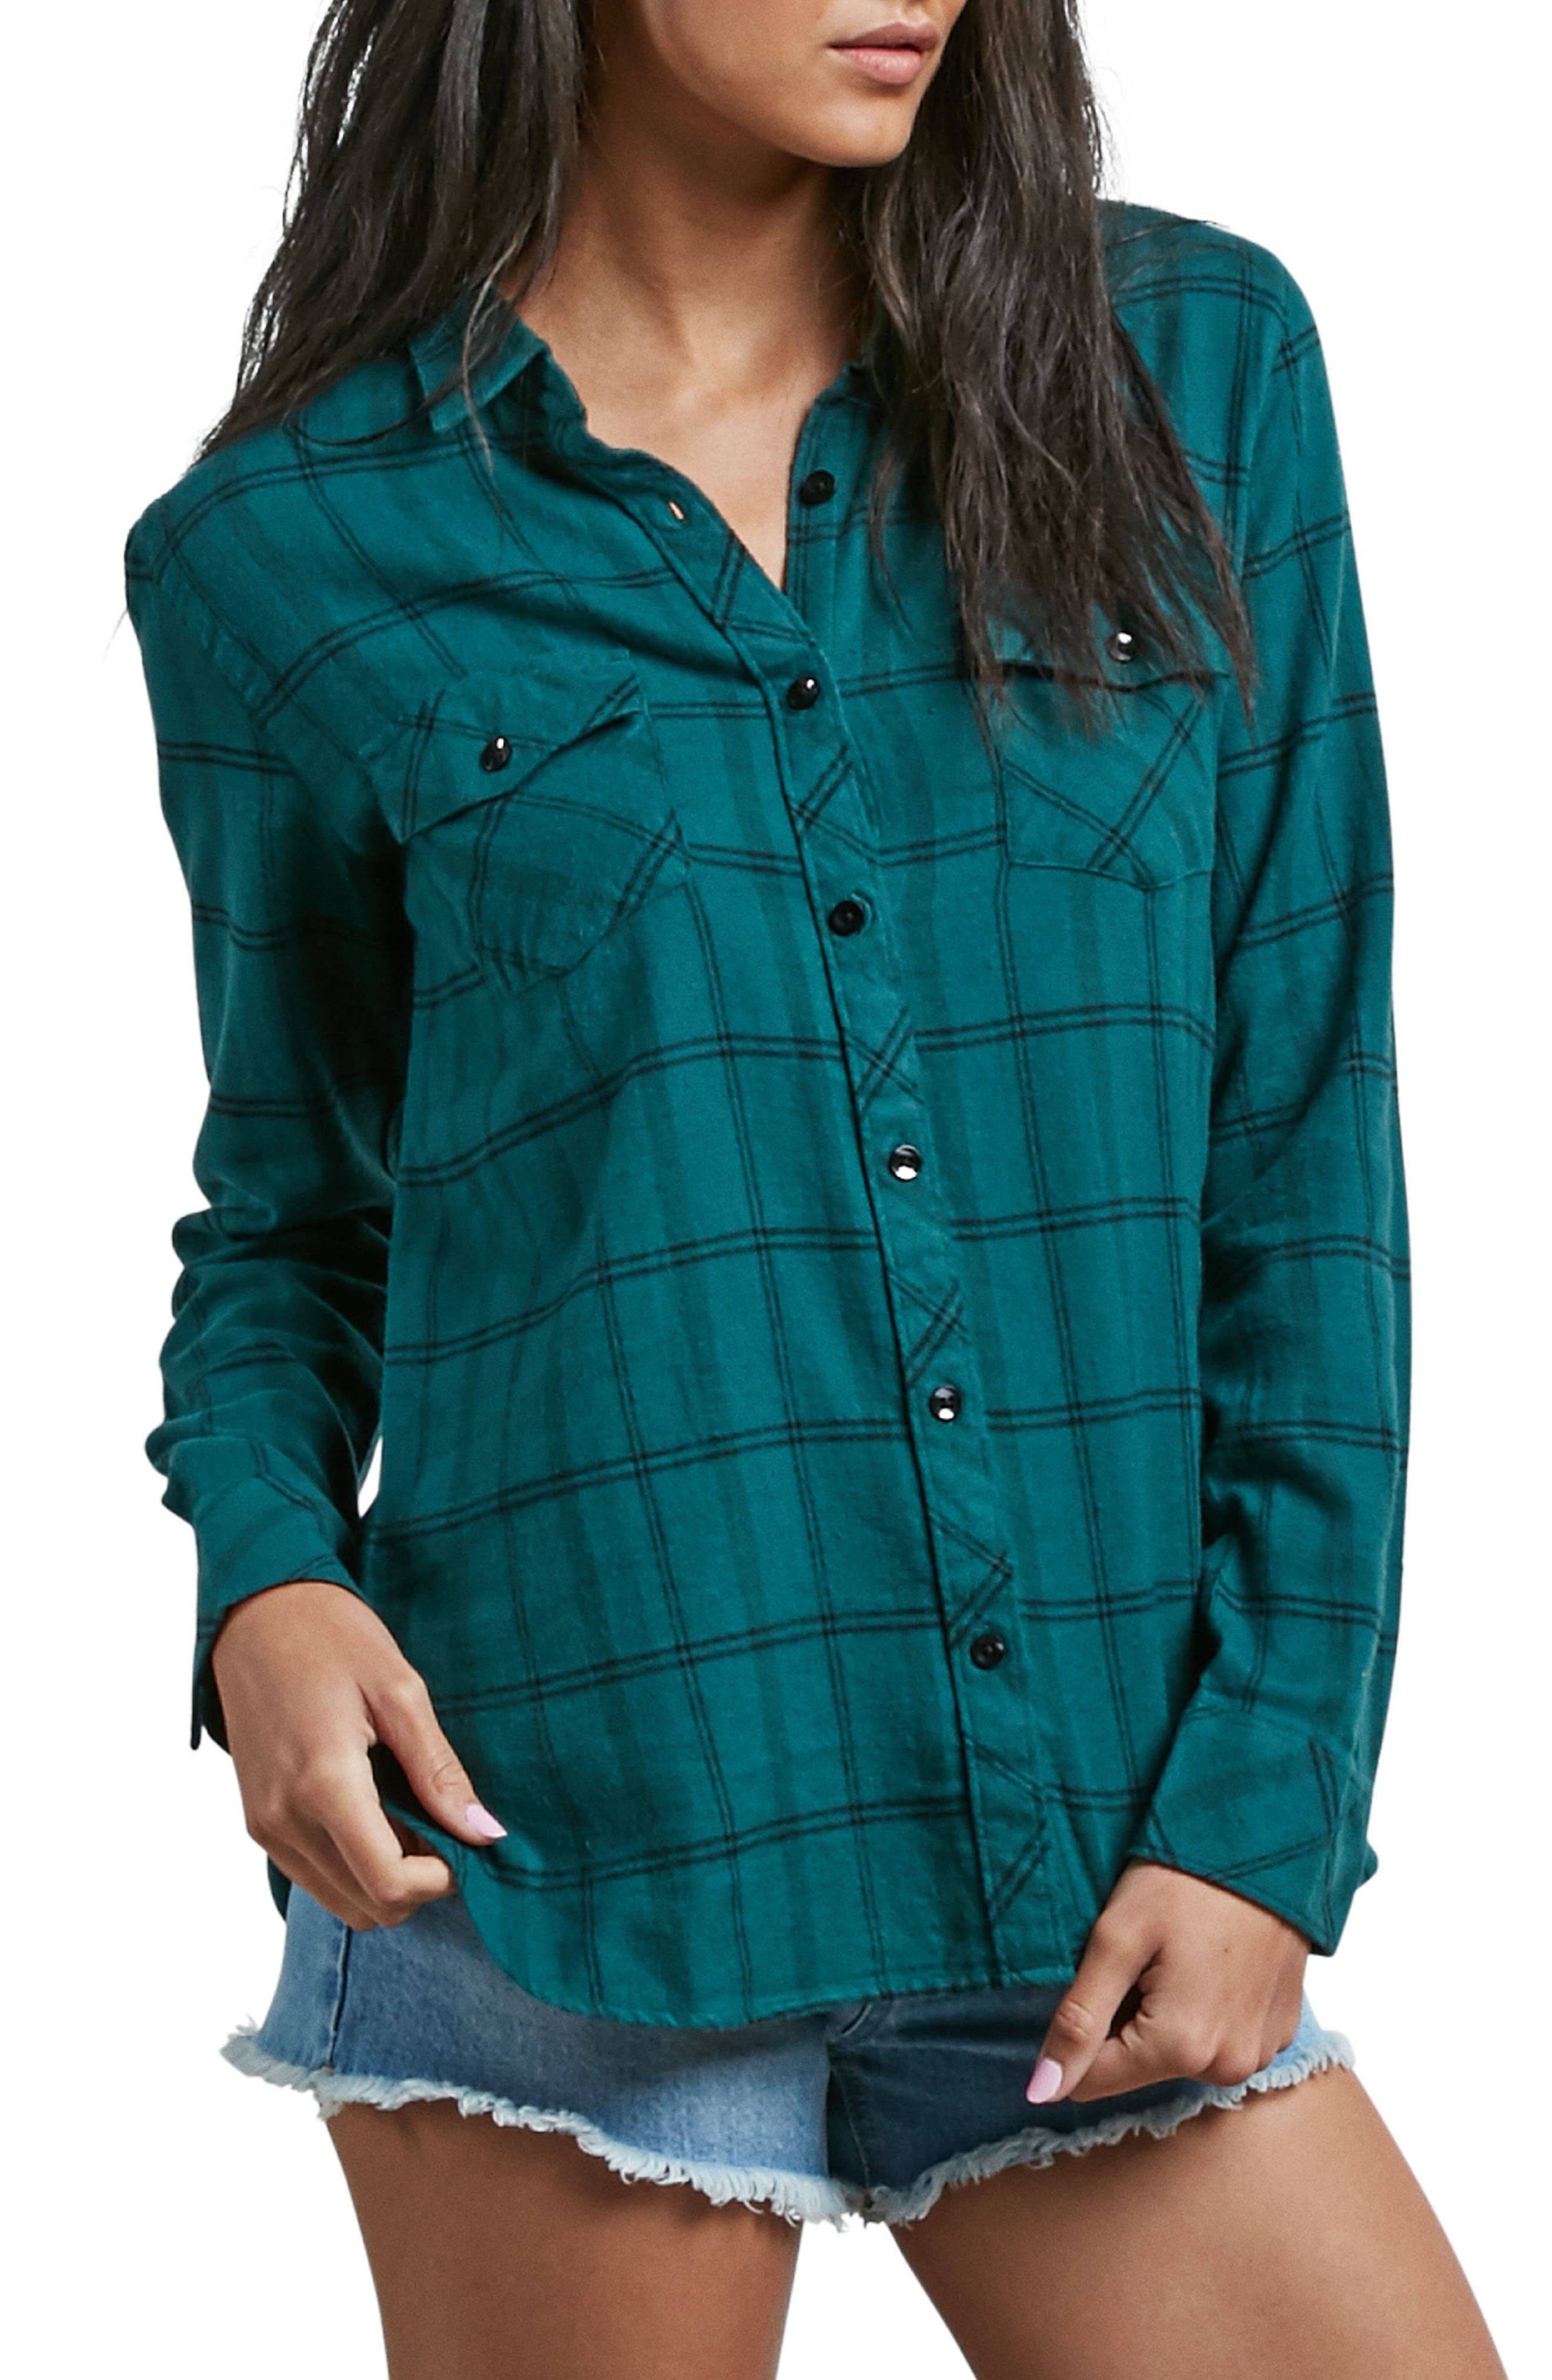 Street Dreaming Plaid Cotton Shirt,                         Main,                         color, 302